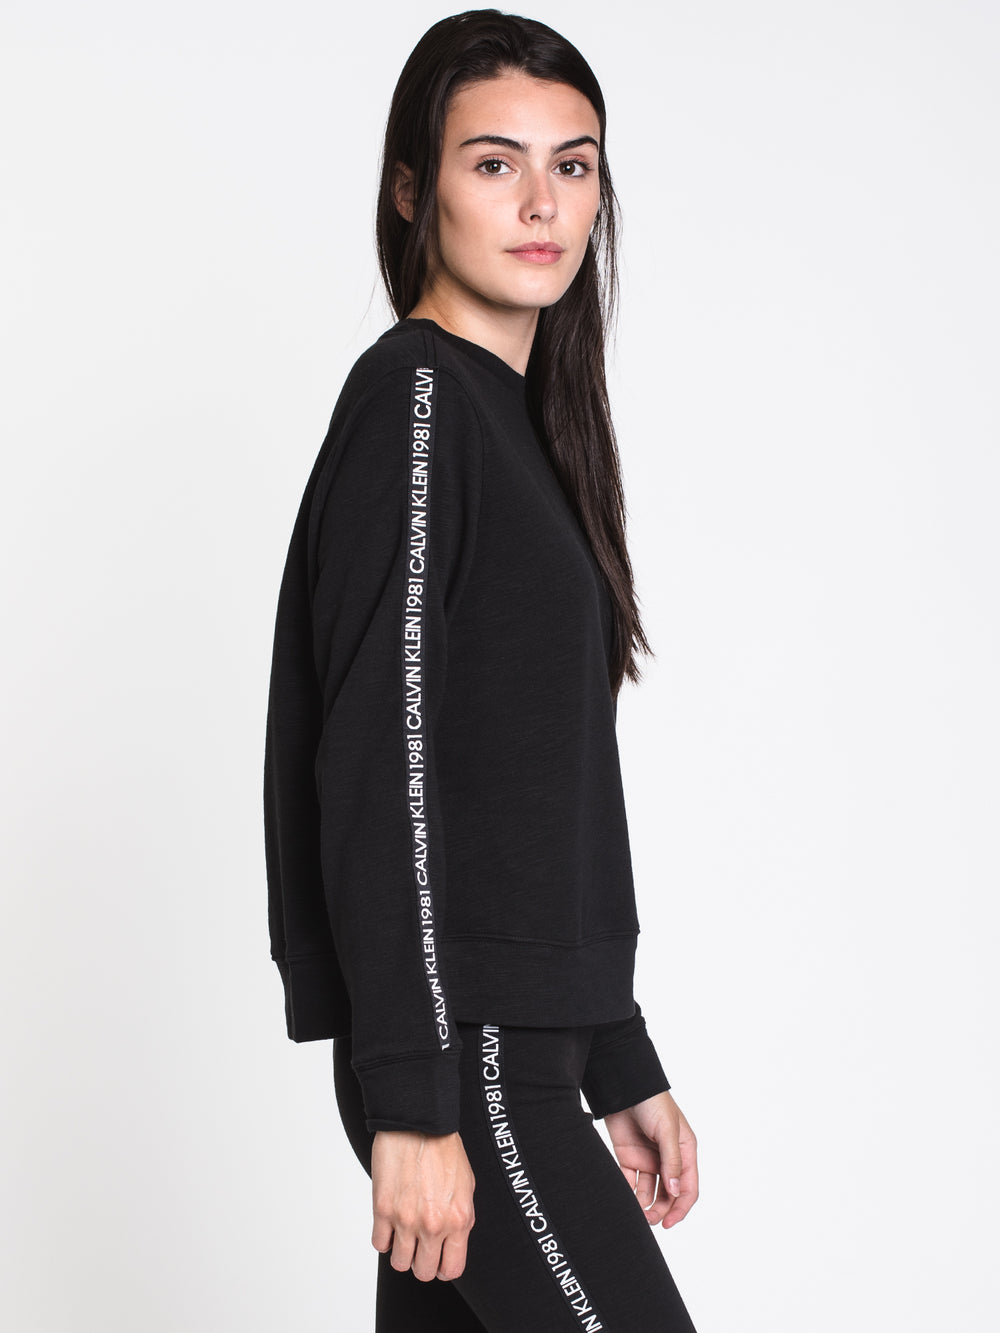 WOMENS 1981 BOLD TAPED CREW - BLACK